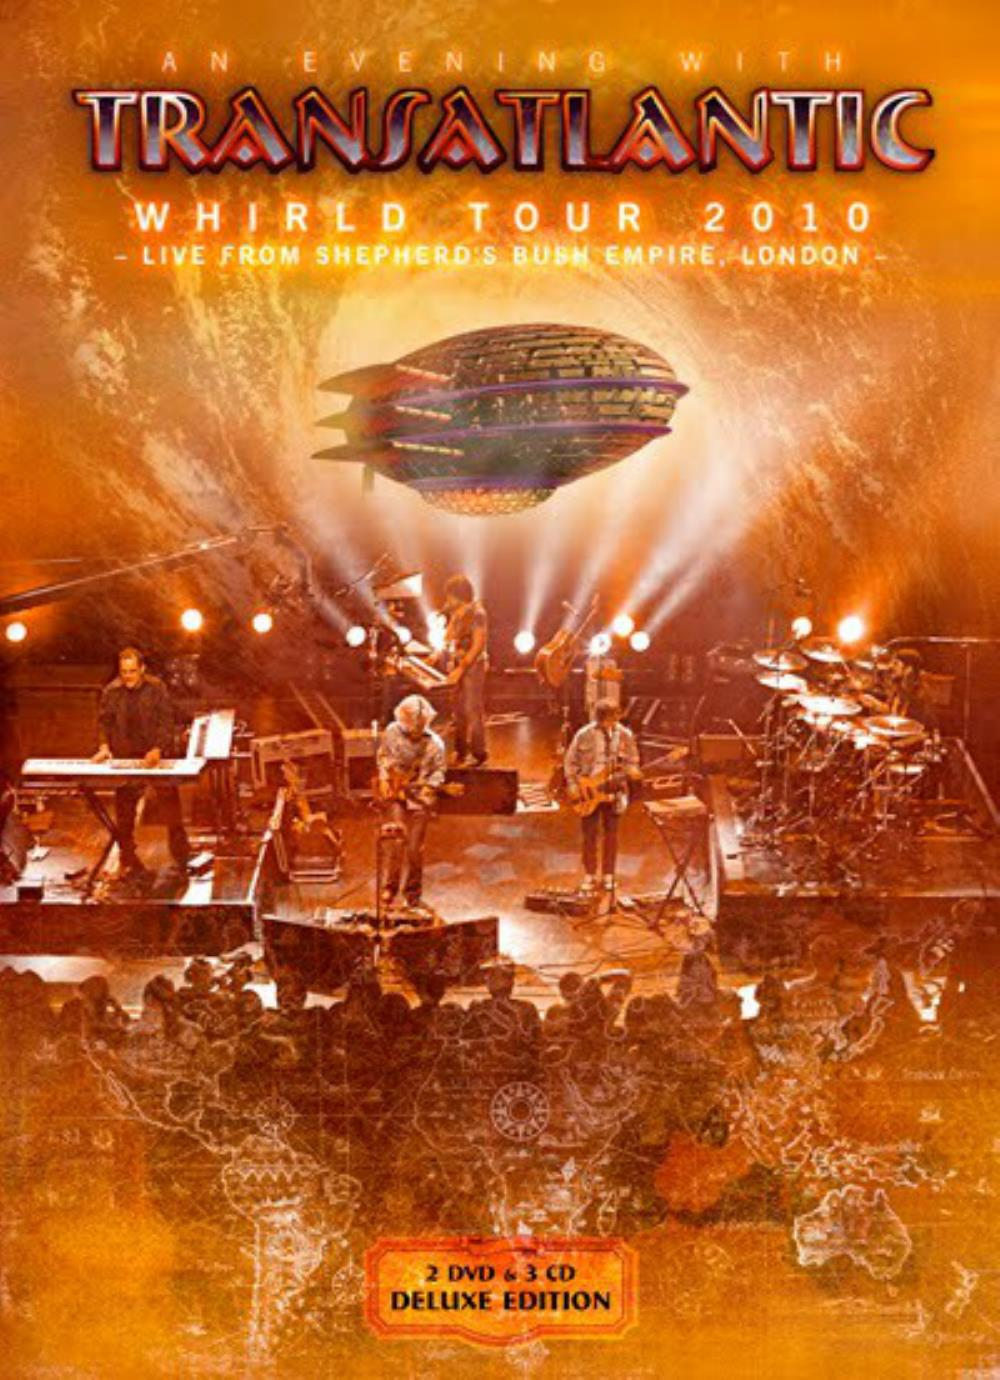 Whirld Tour 2010 - Live From Shepherd's Bush Empire, London by TRANSATLANTIC album cover